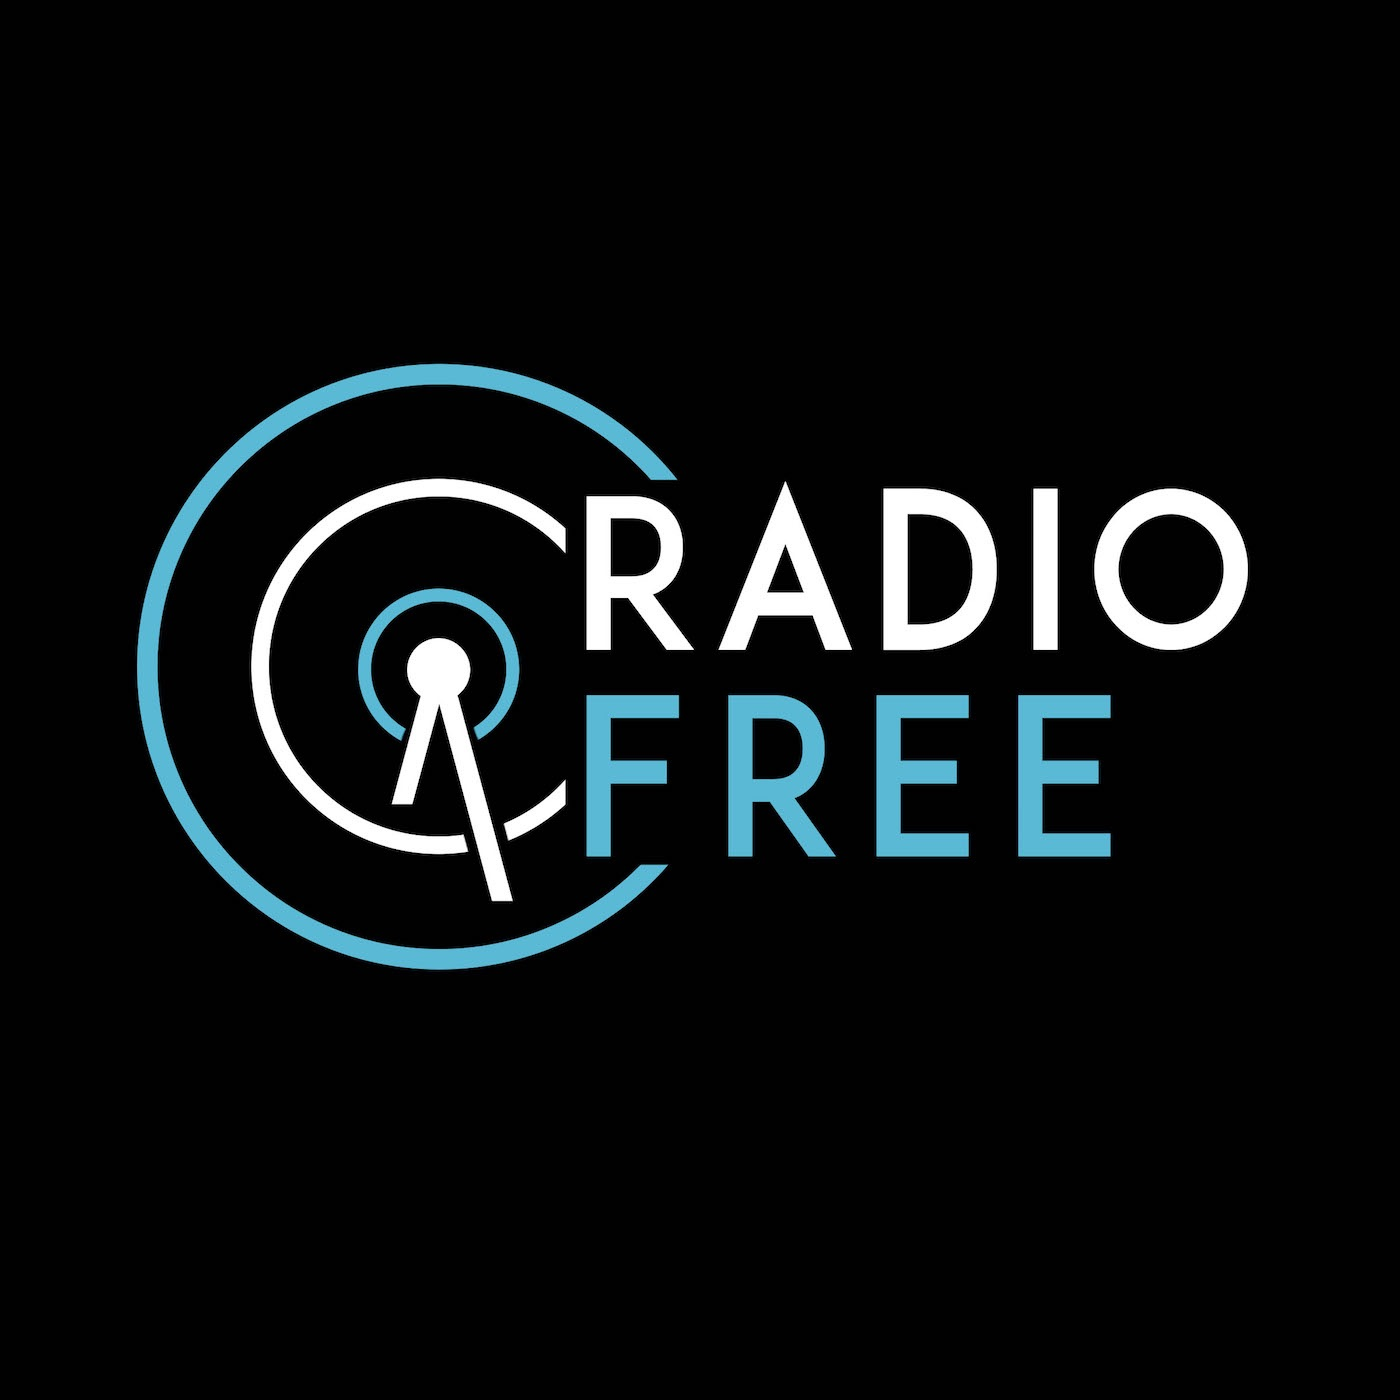 Podcasts free